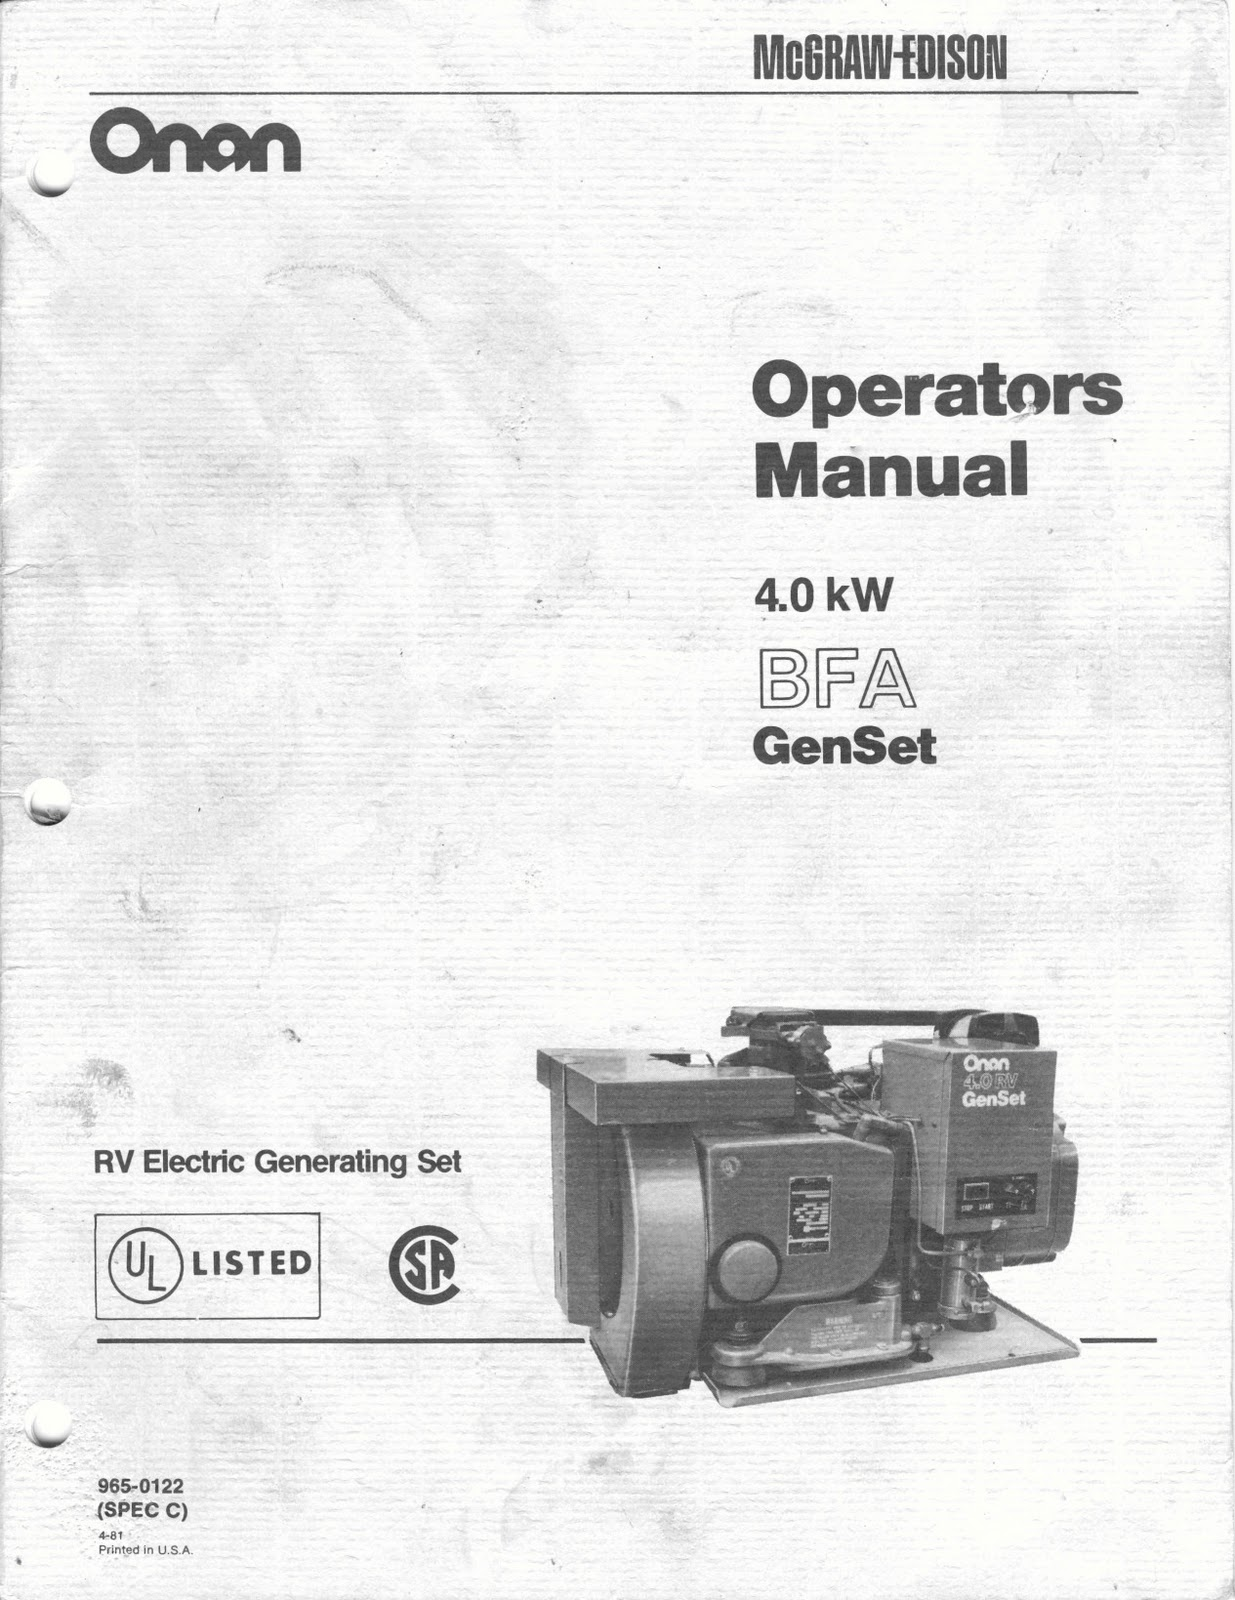 hight resolution of onan 4 0 kw bfa genset operators manual